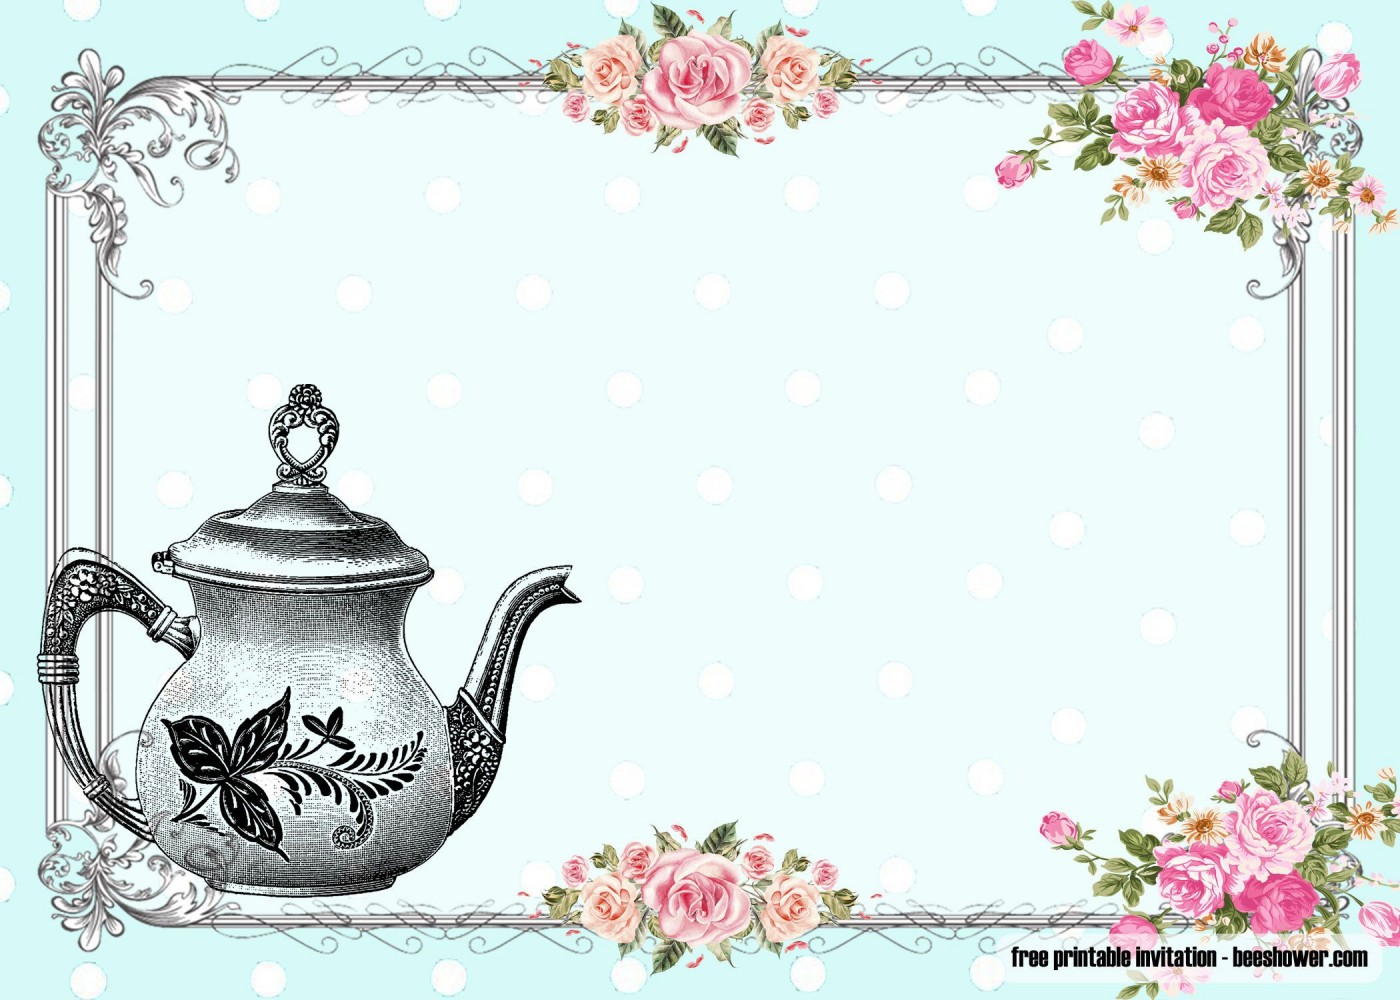 010 Awful Tea Party Invitation Template Idea  Card Victorian Wording For Bridal Shower1400